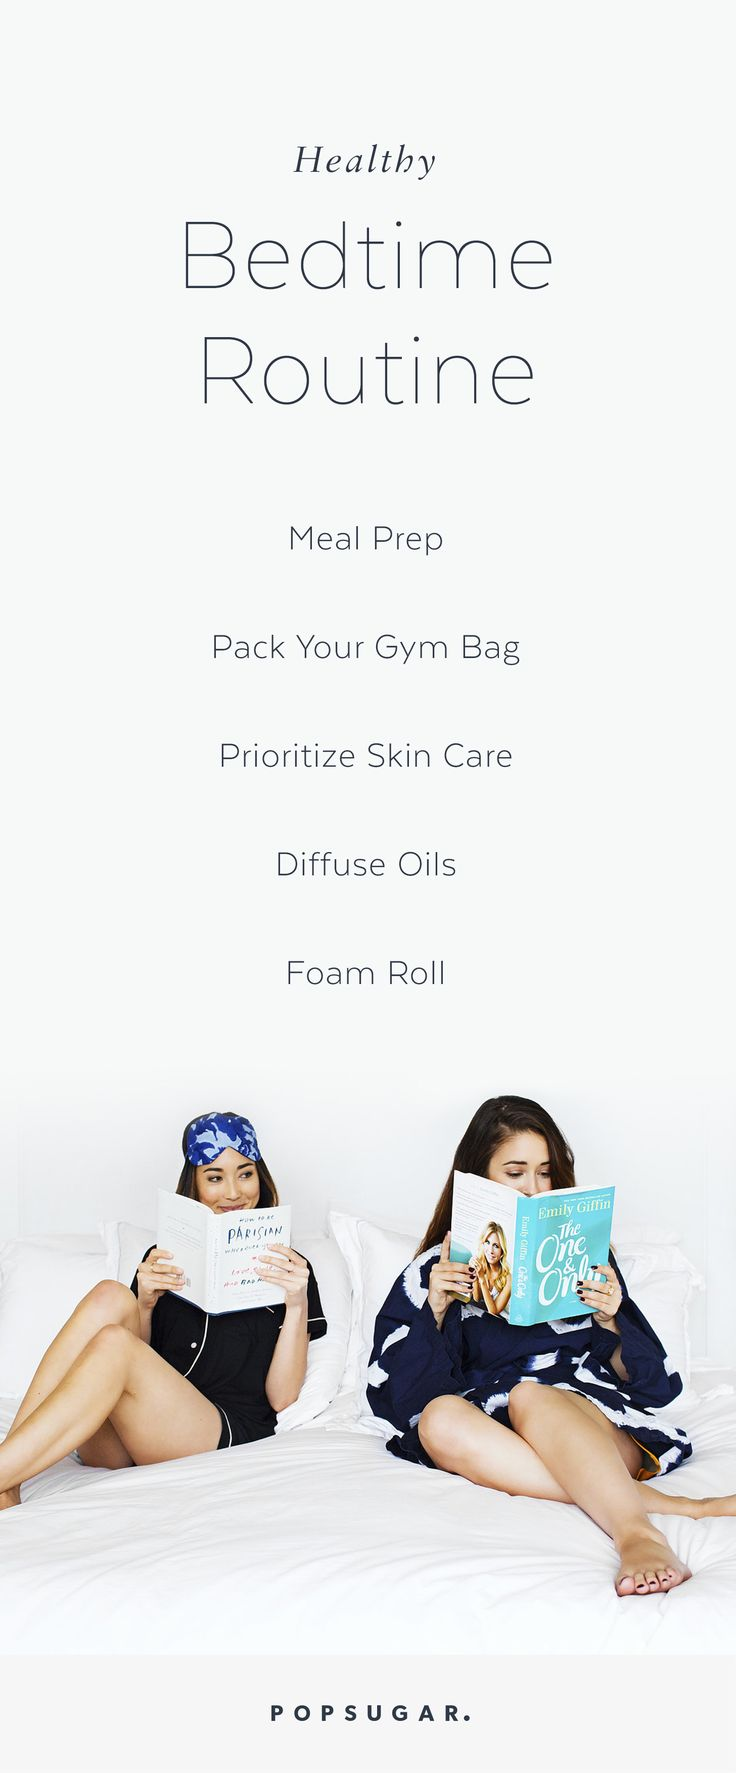 Setup for a healthier tomorrow with this pre-bed routine. Add these tips into your daily schedule to help with your skin, meal prepping, and fitness! #health #healthylifestyle #bedtimeritual #doctorsydneycbd #sydneycbdmedicalpractice #cbdmedicalcentre #sydneymedicalpractice #citydoctorssydney